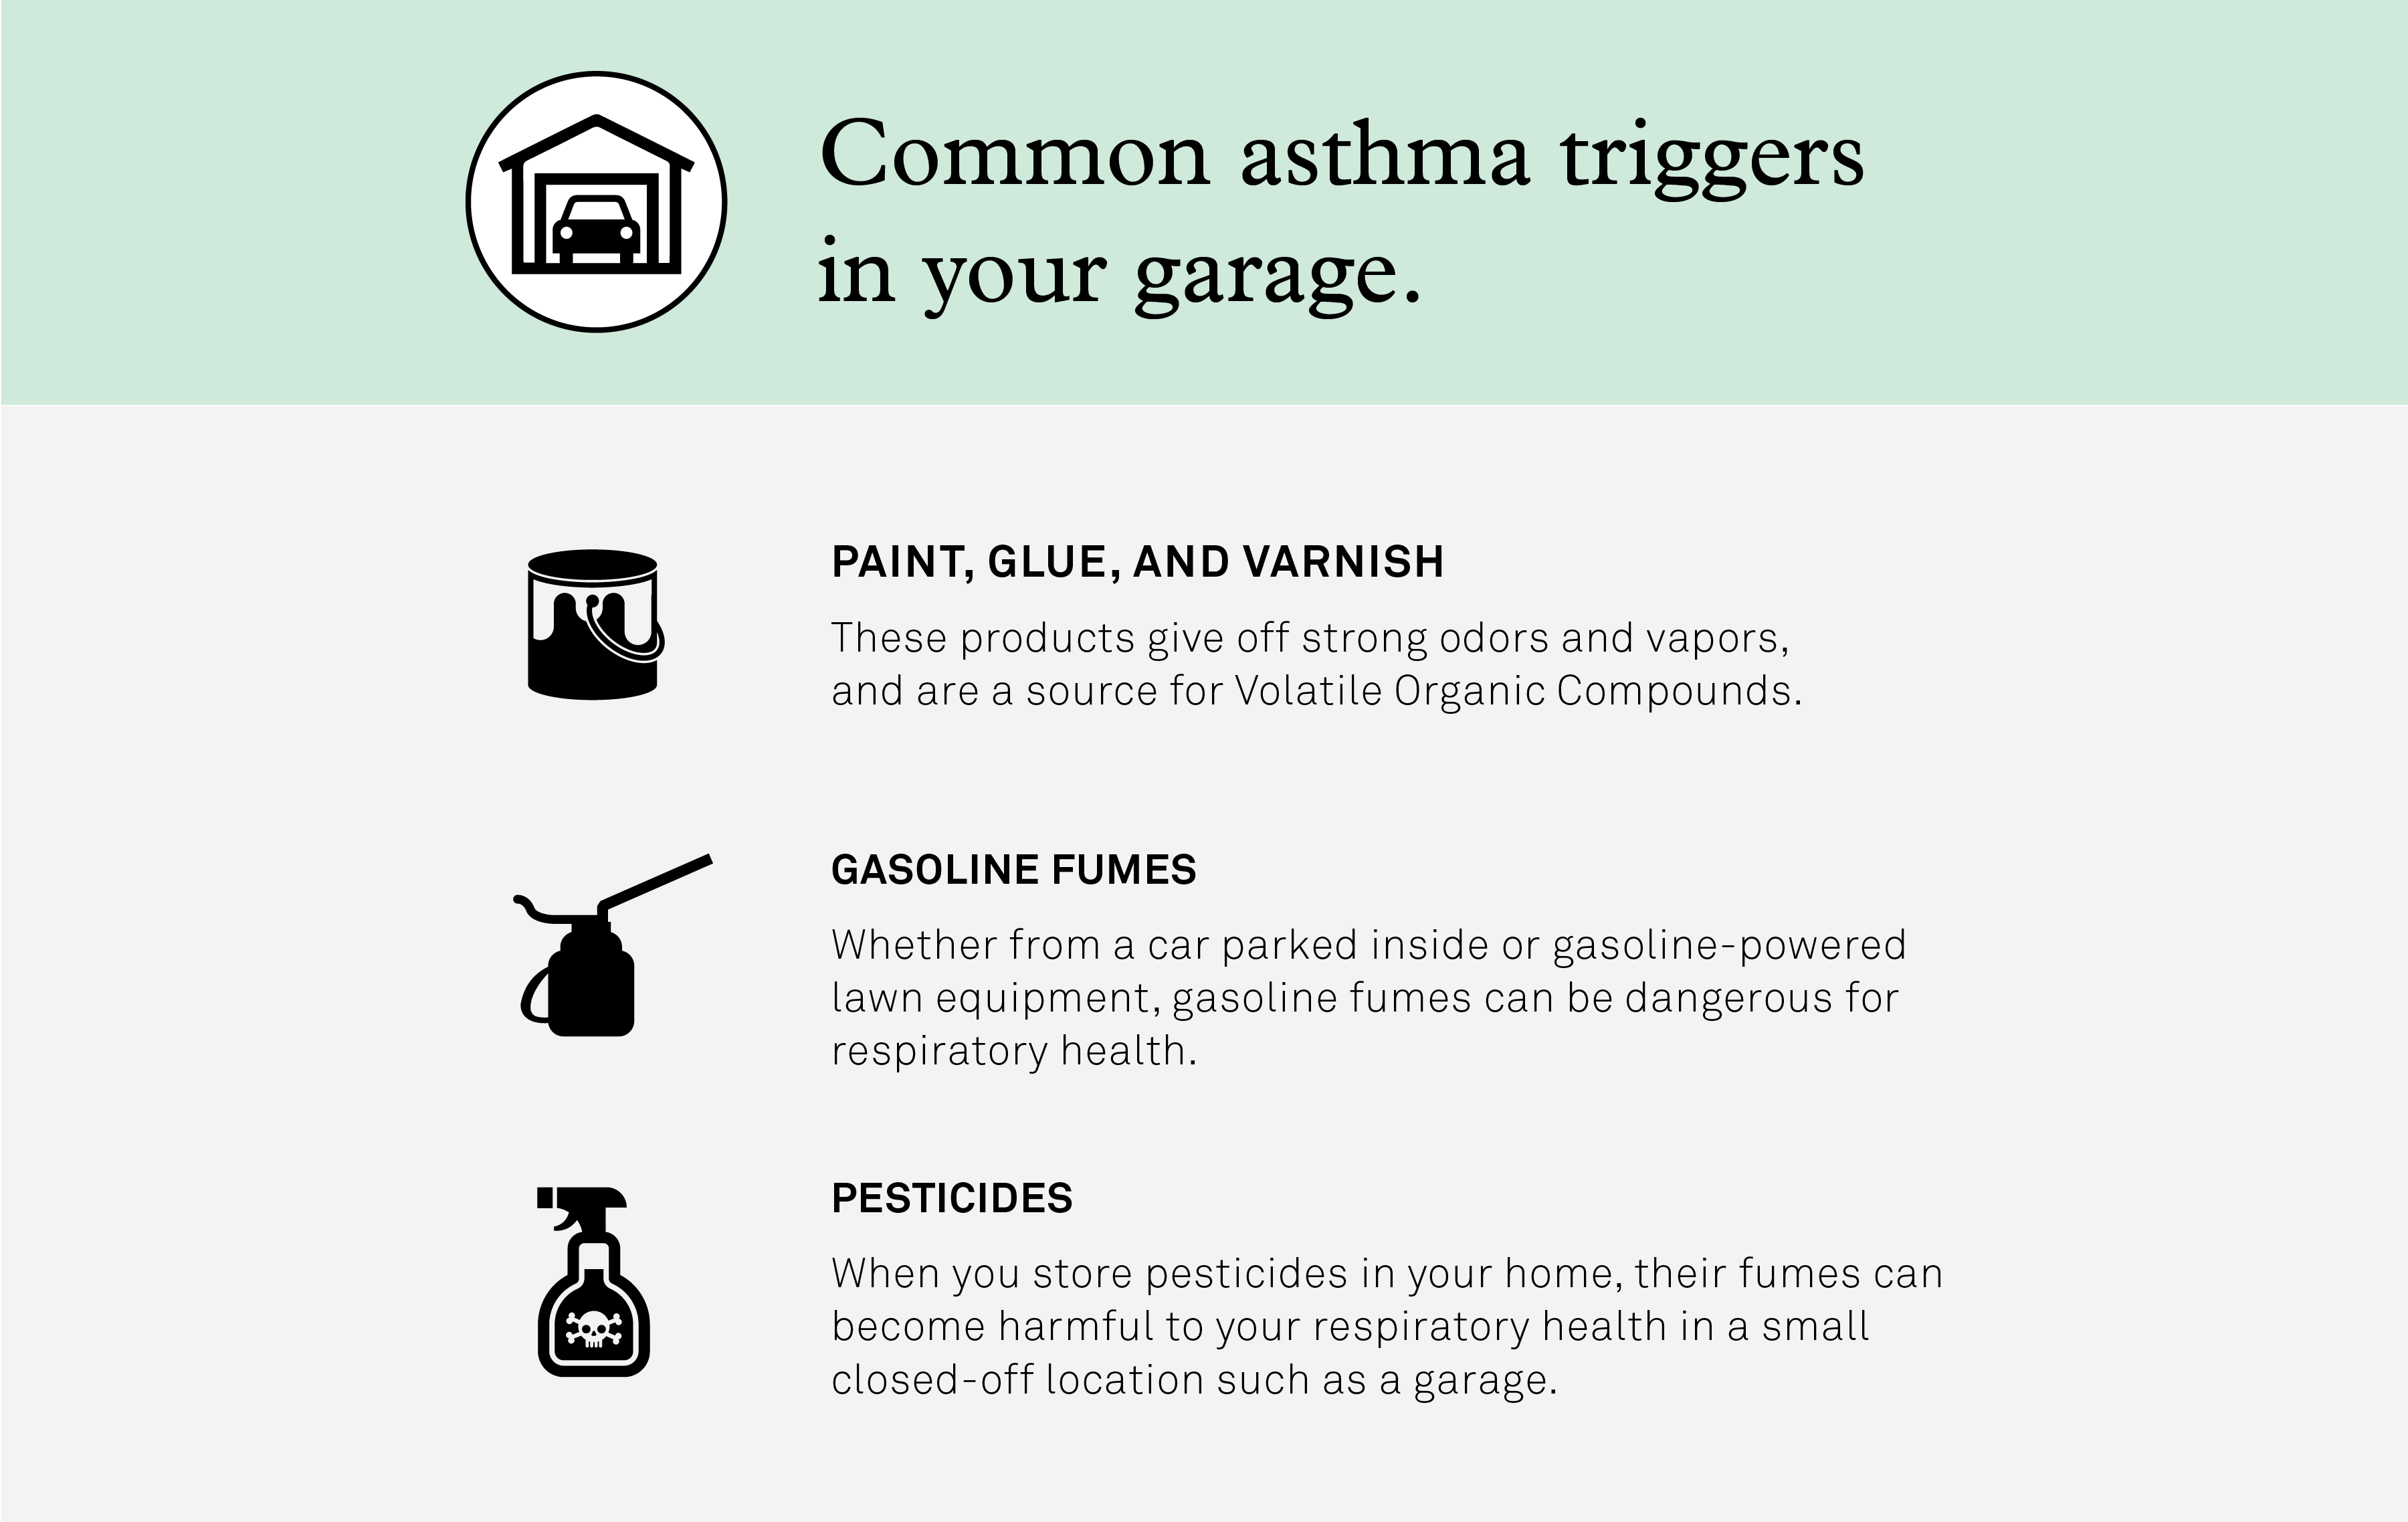 Asthma Triggers in Garage